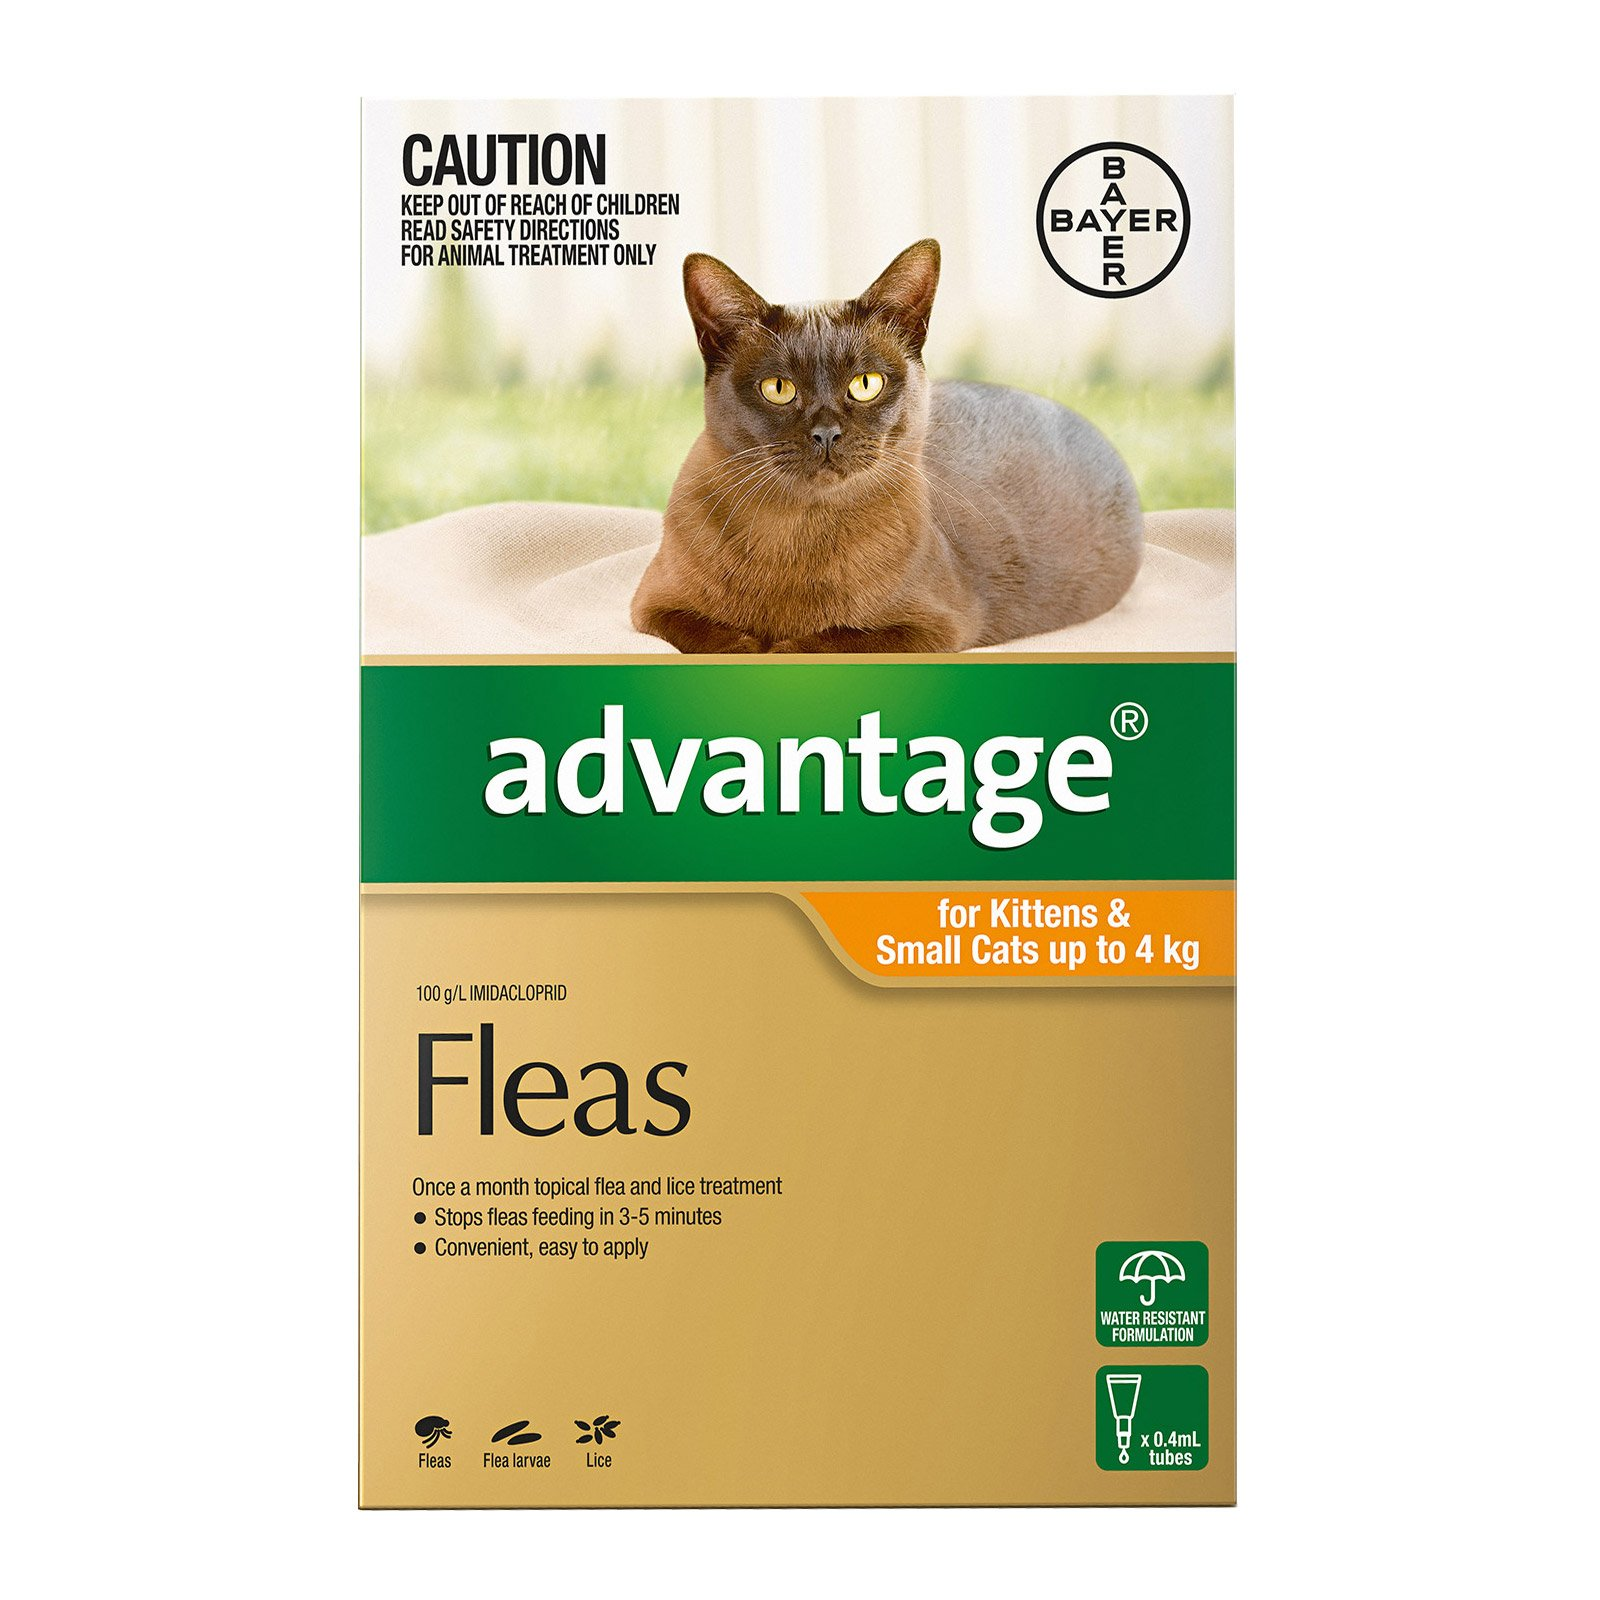 Advantage For Kittens & Small Cats Up To 4Kg (Orange)